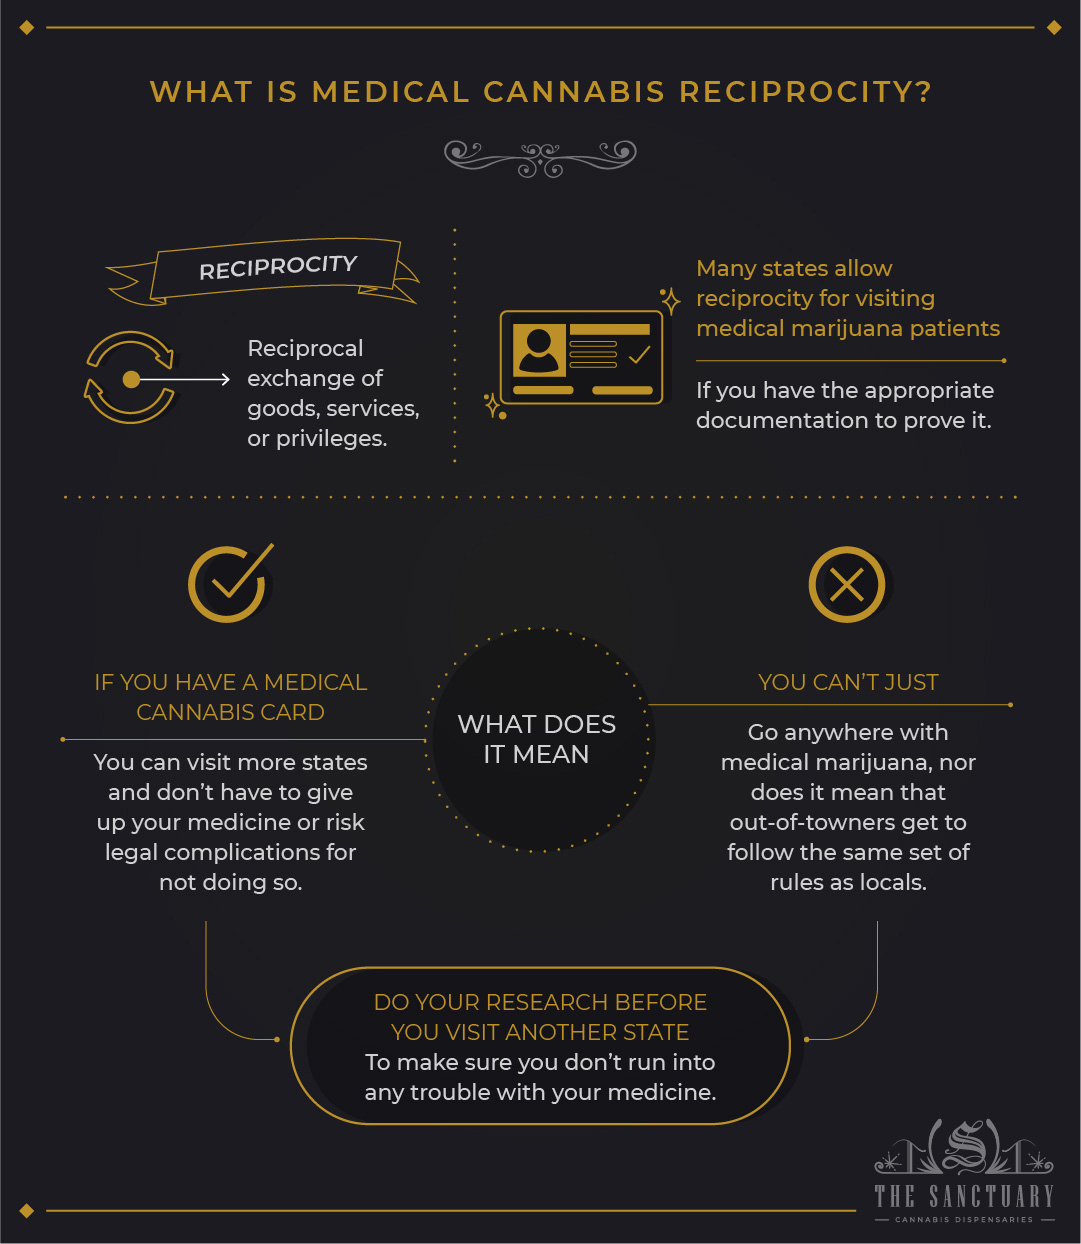 What is medical cannabis reciprocity